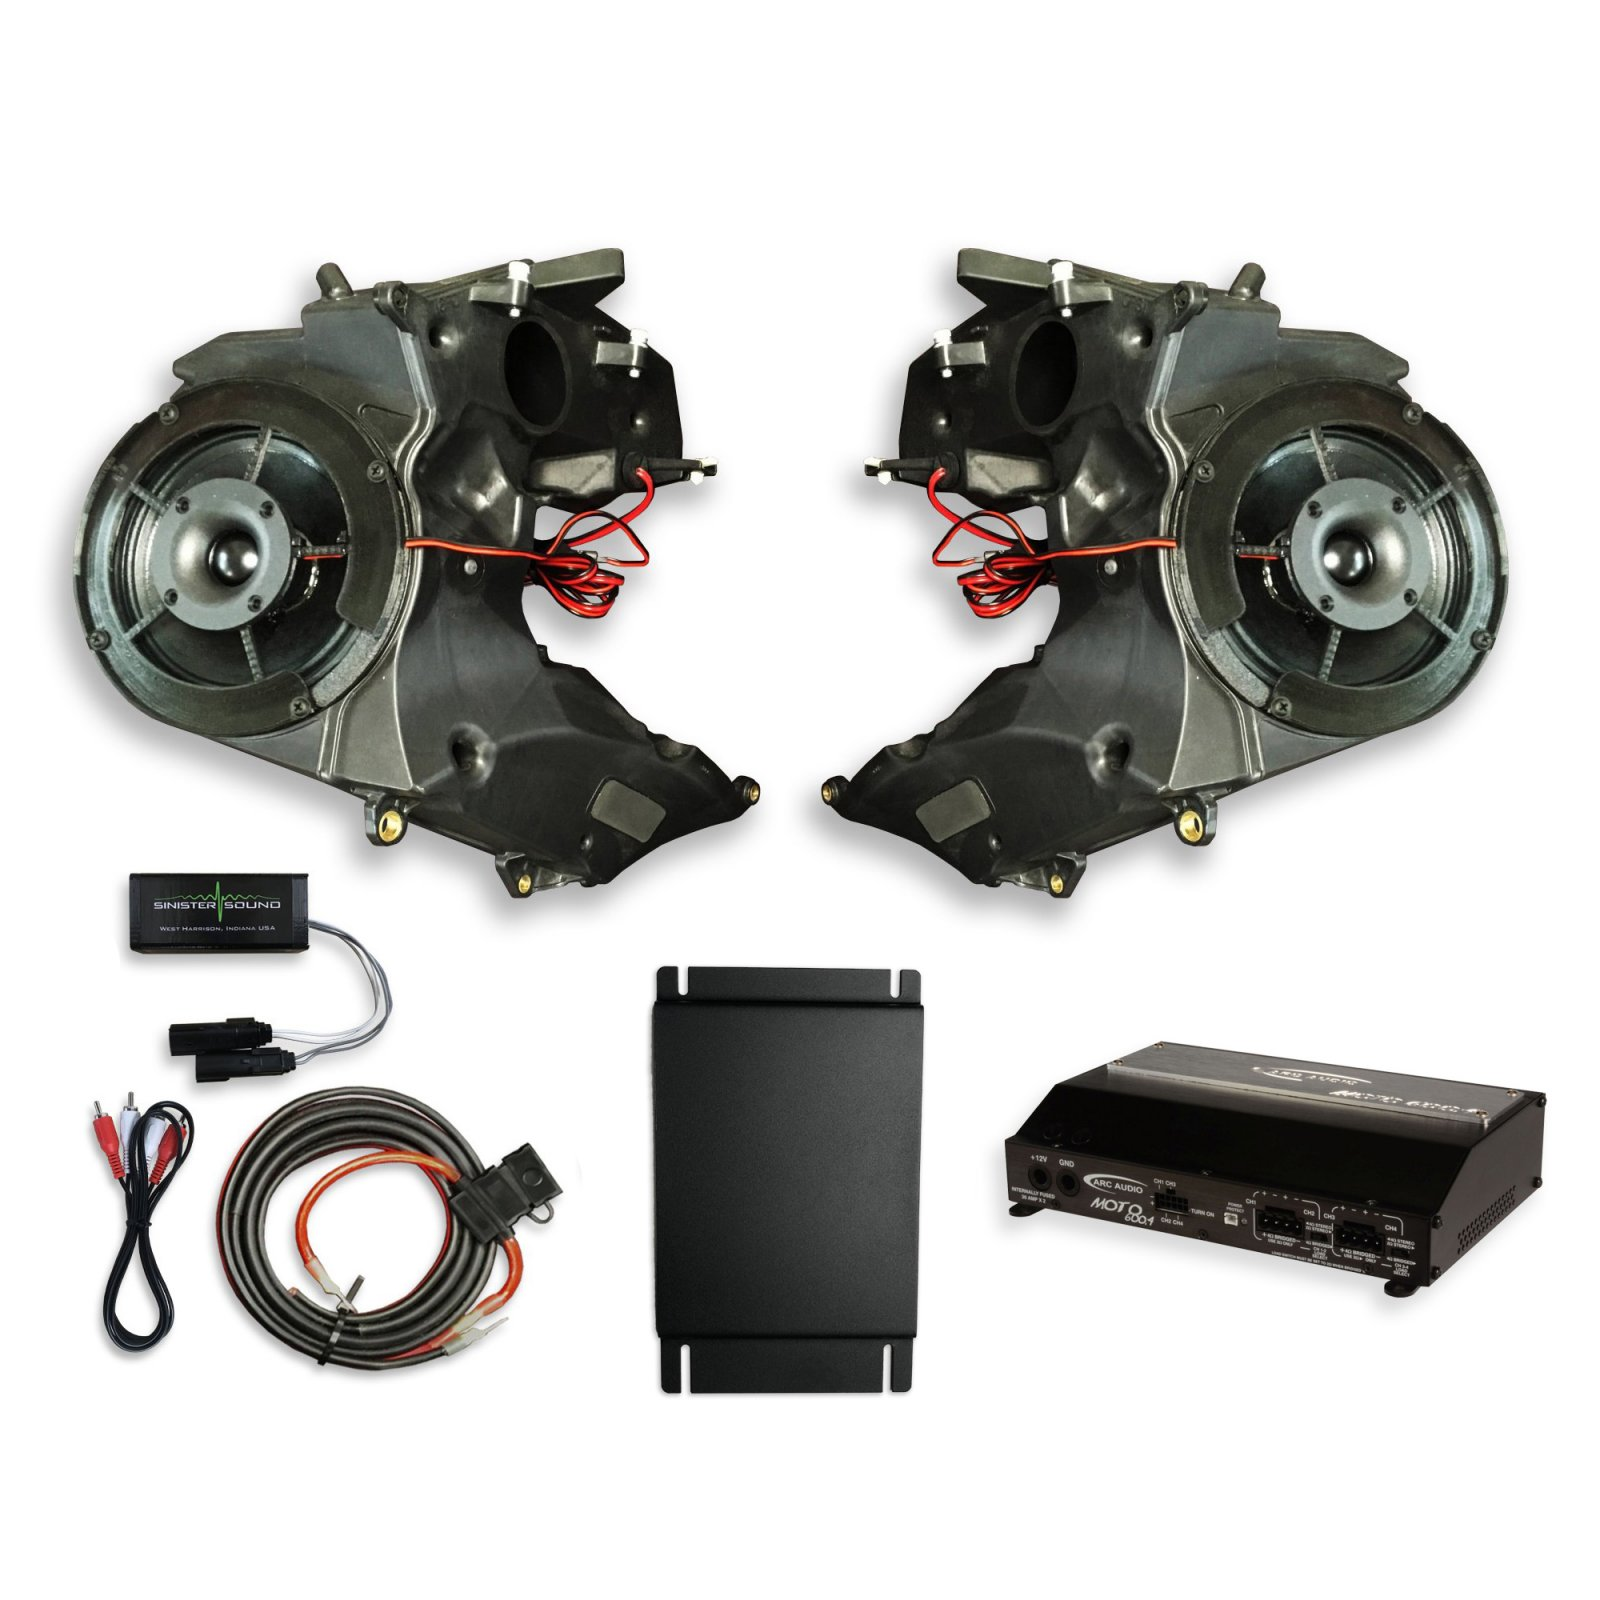 15-18 Road Glide SinisterSound Fairing System w/Arc Audio Moto 720, RG15 and Line Level